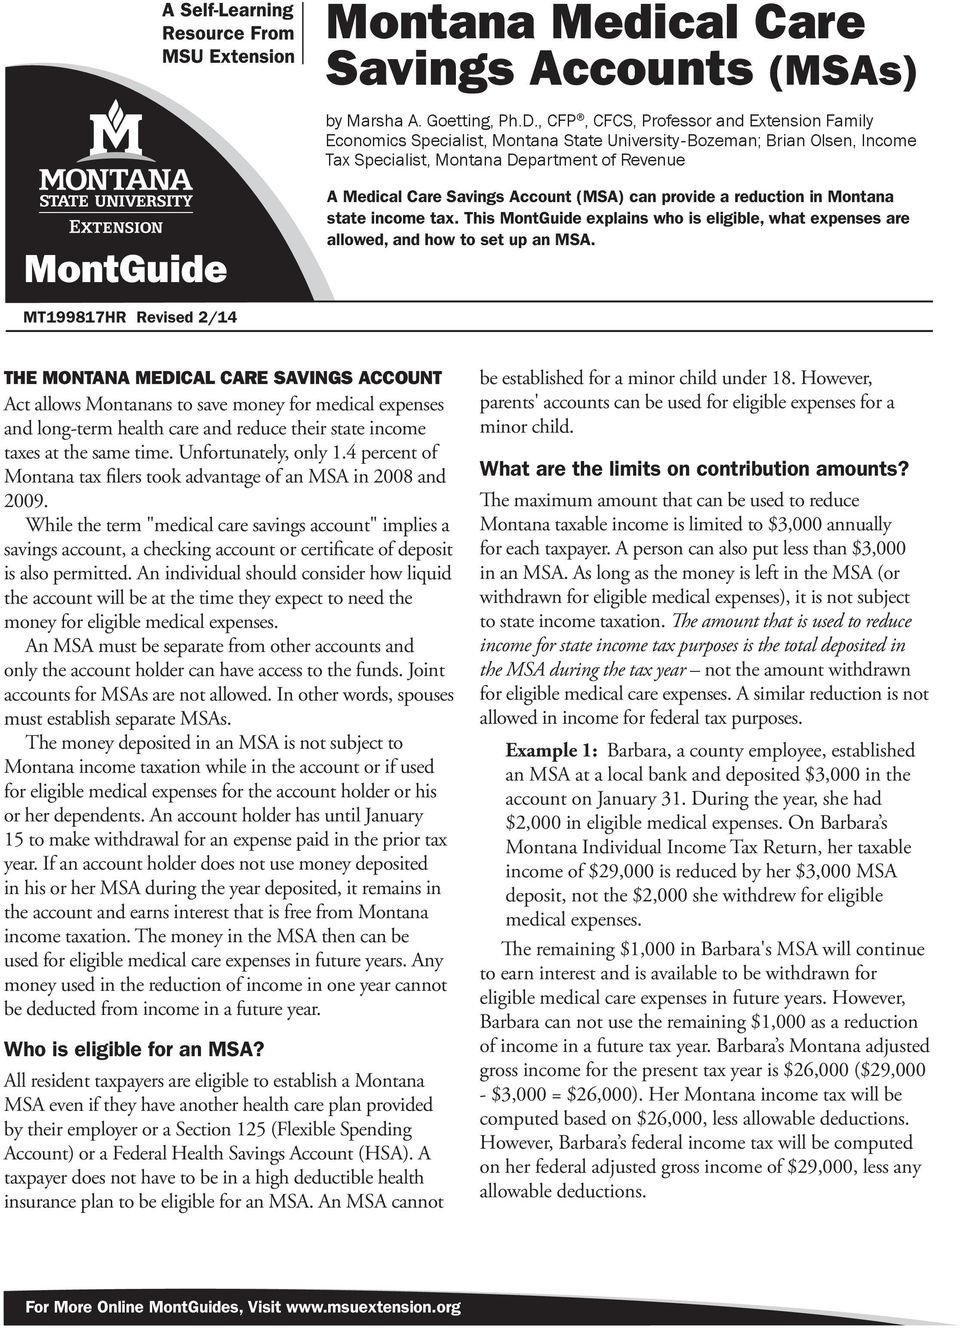 Account (MSA) can provide a reduction in Montana state income tax. This MontGuide explains who is eligible, what expenses are allowed, and how to set up an MSA.